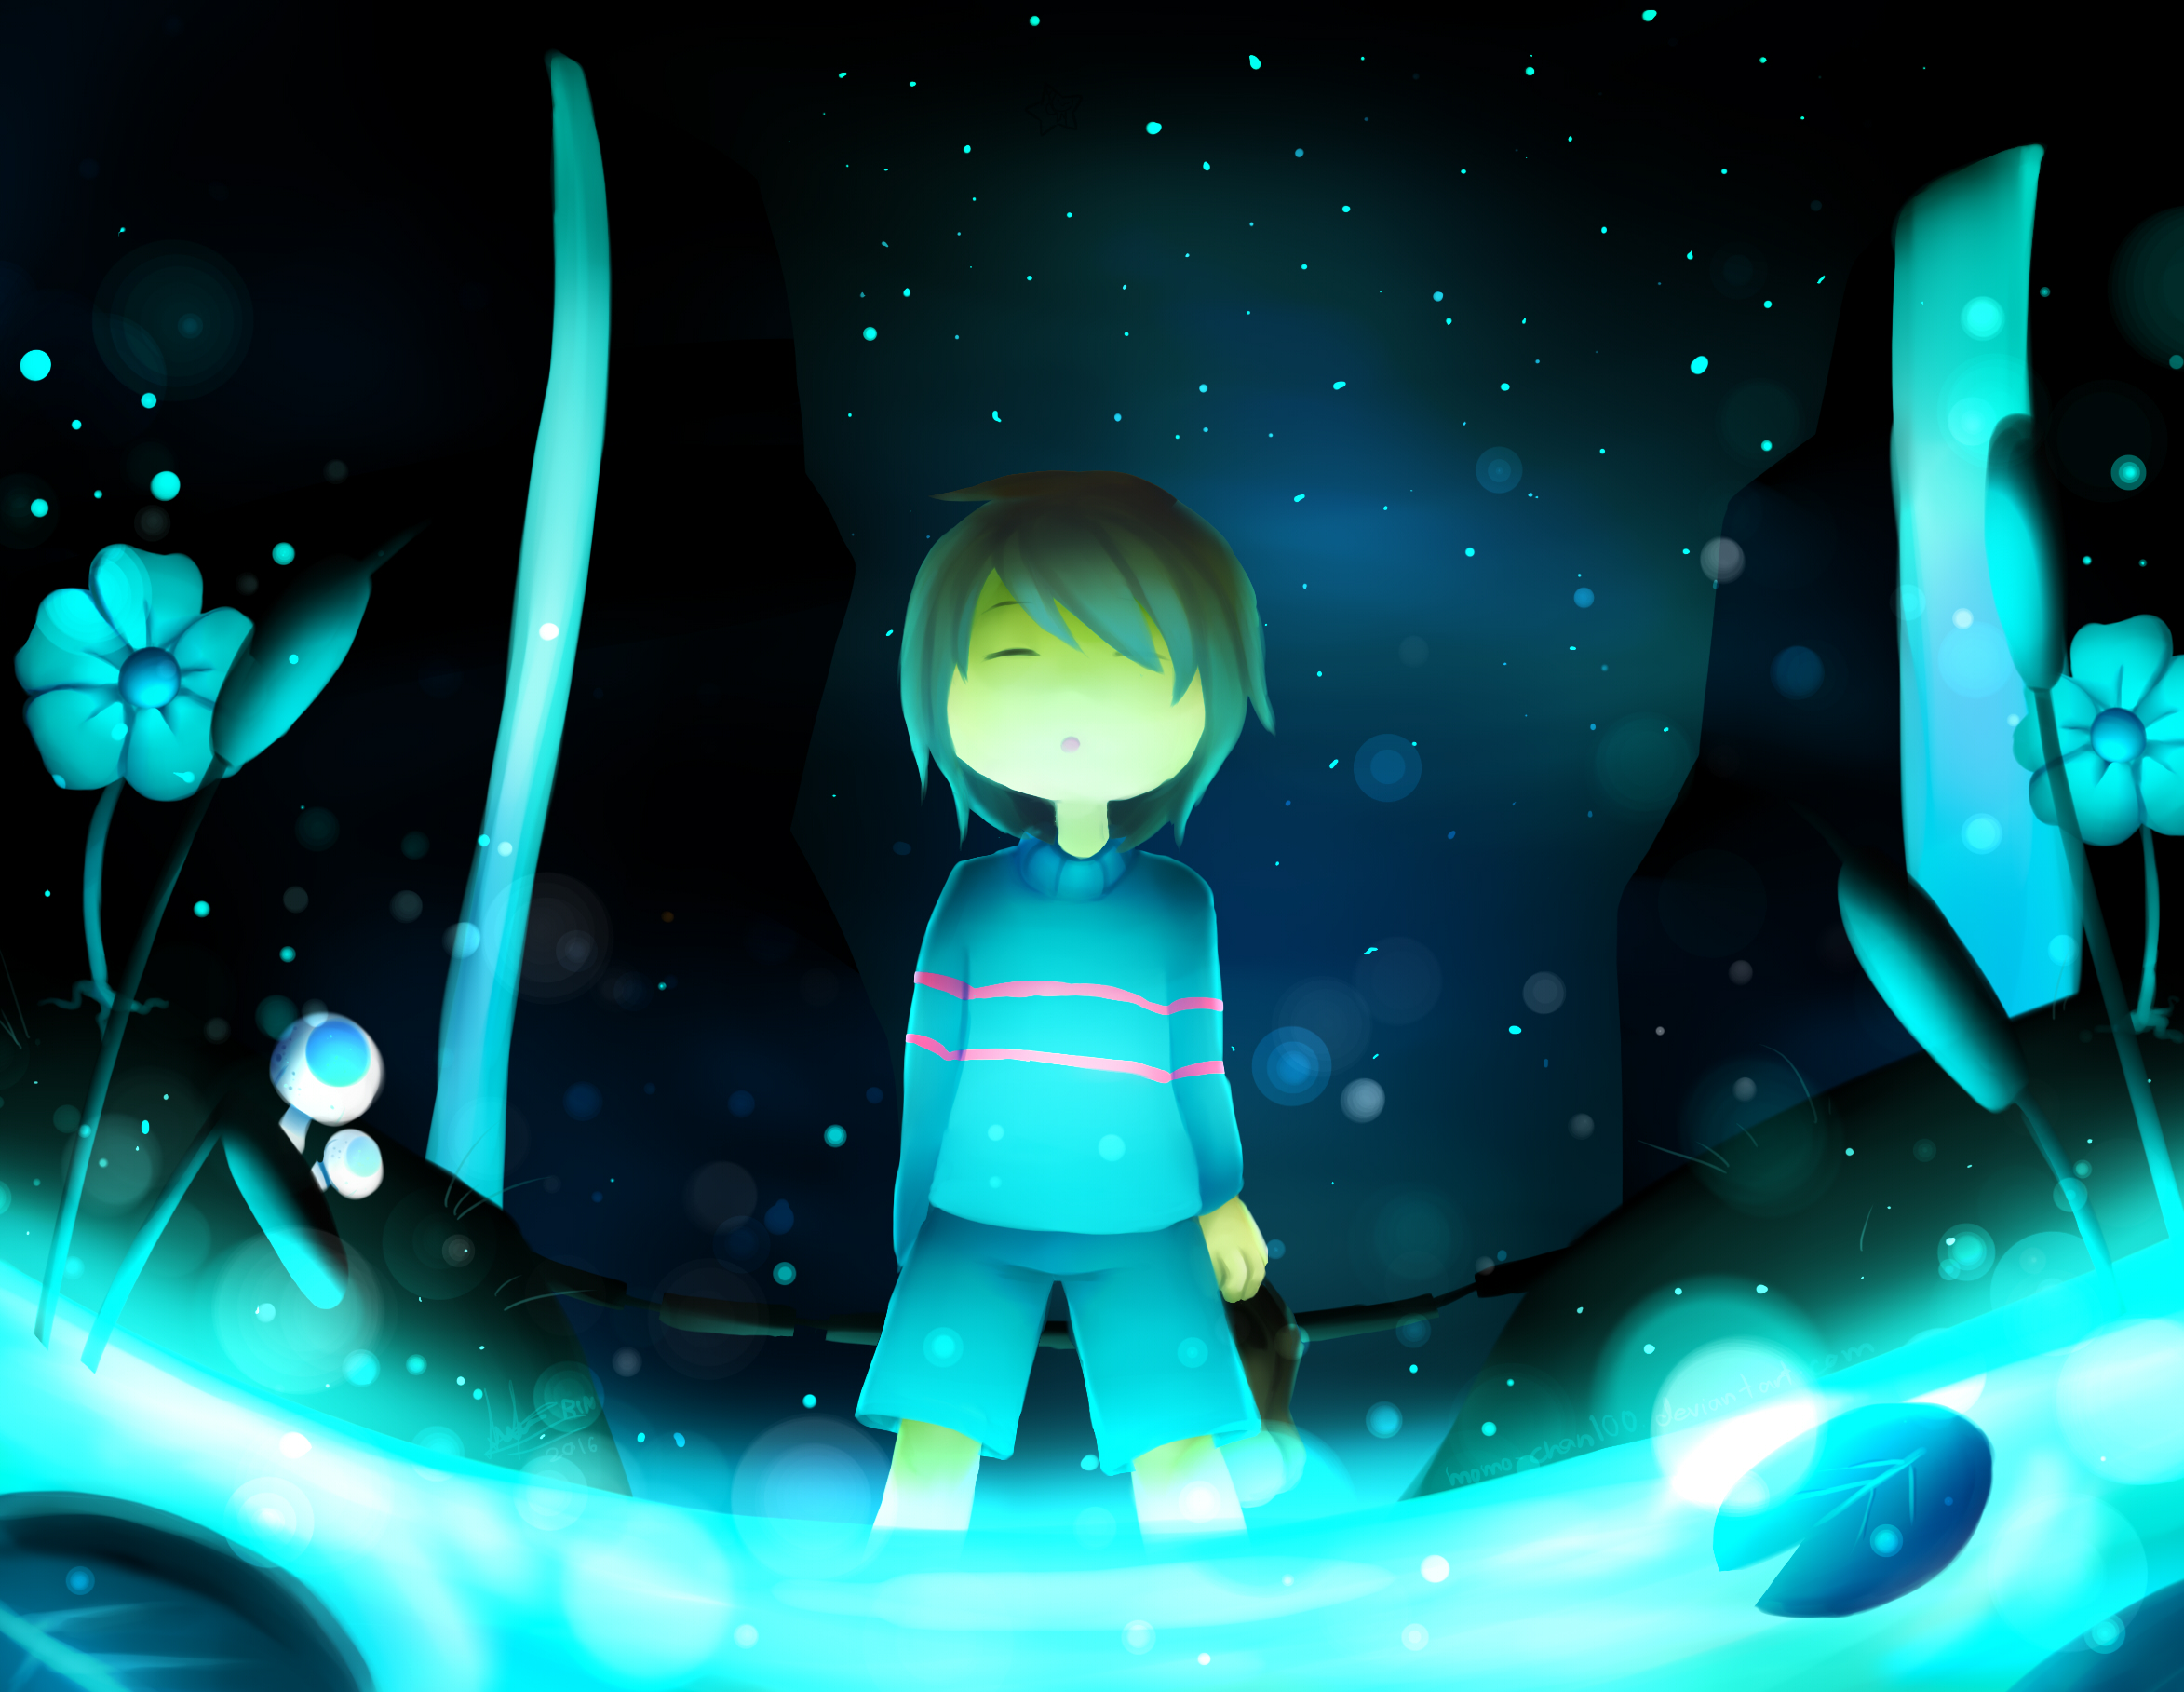 undertale frisk in waterfall - photo #14